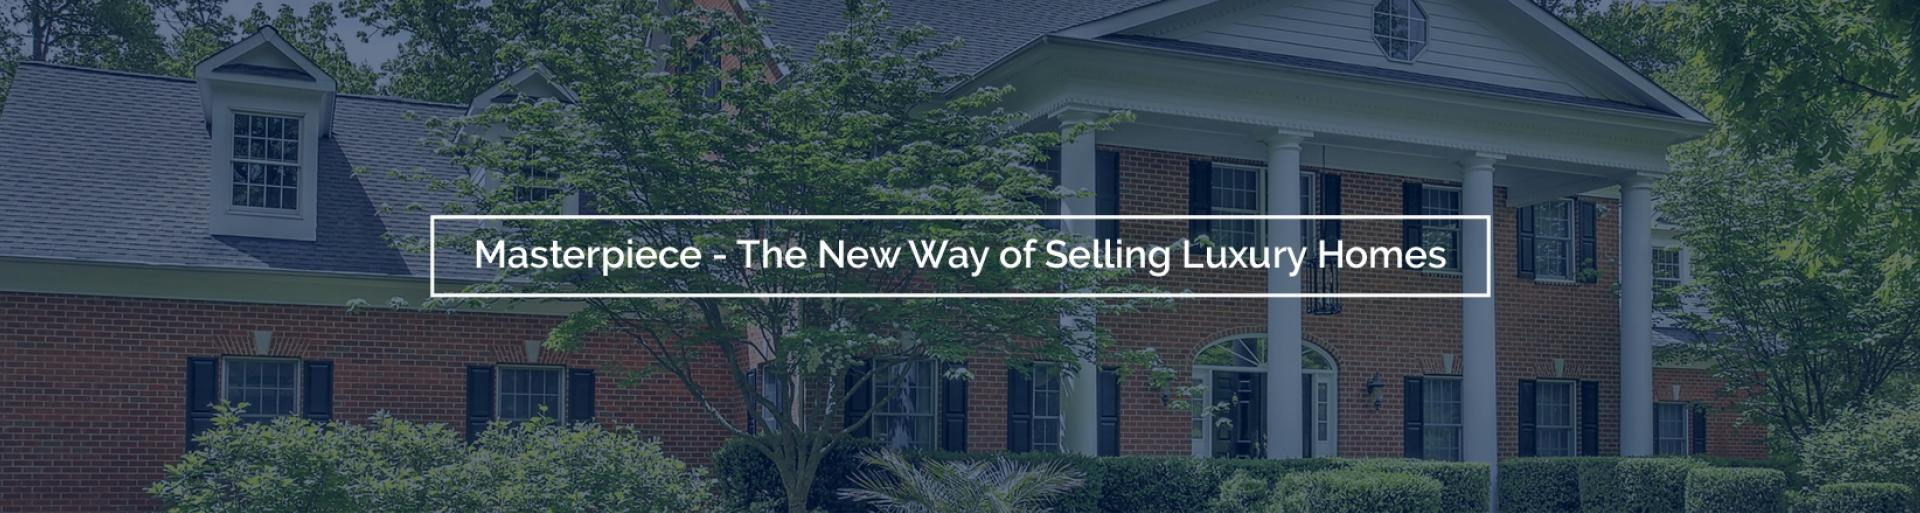 Masterpiece - The New Way of Selling Luxury Homes